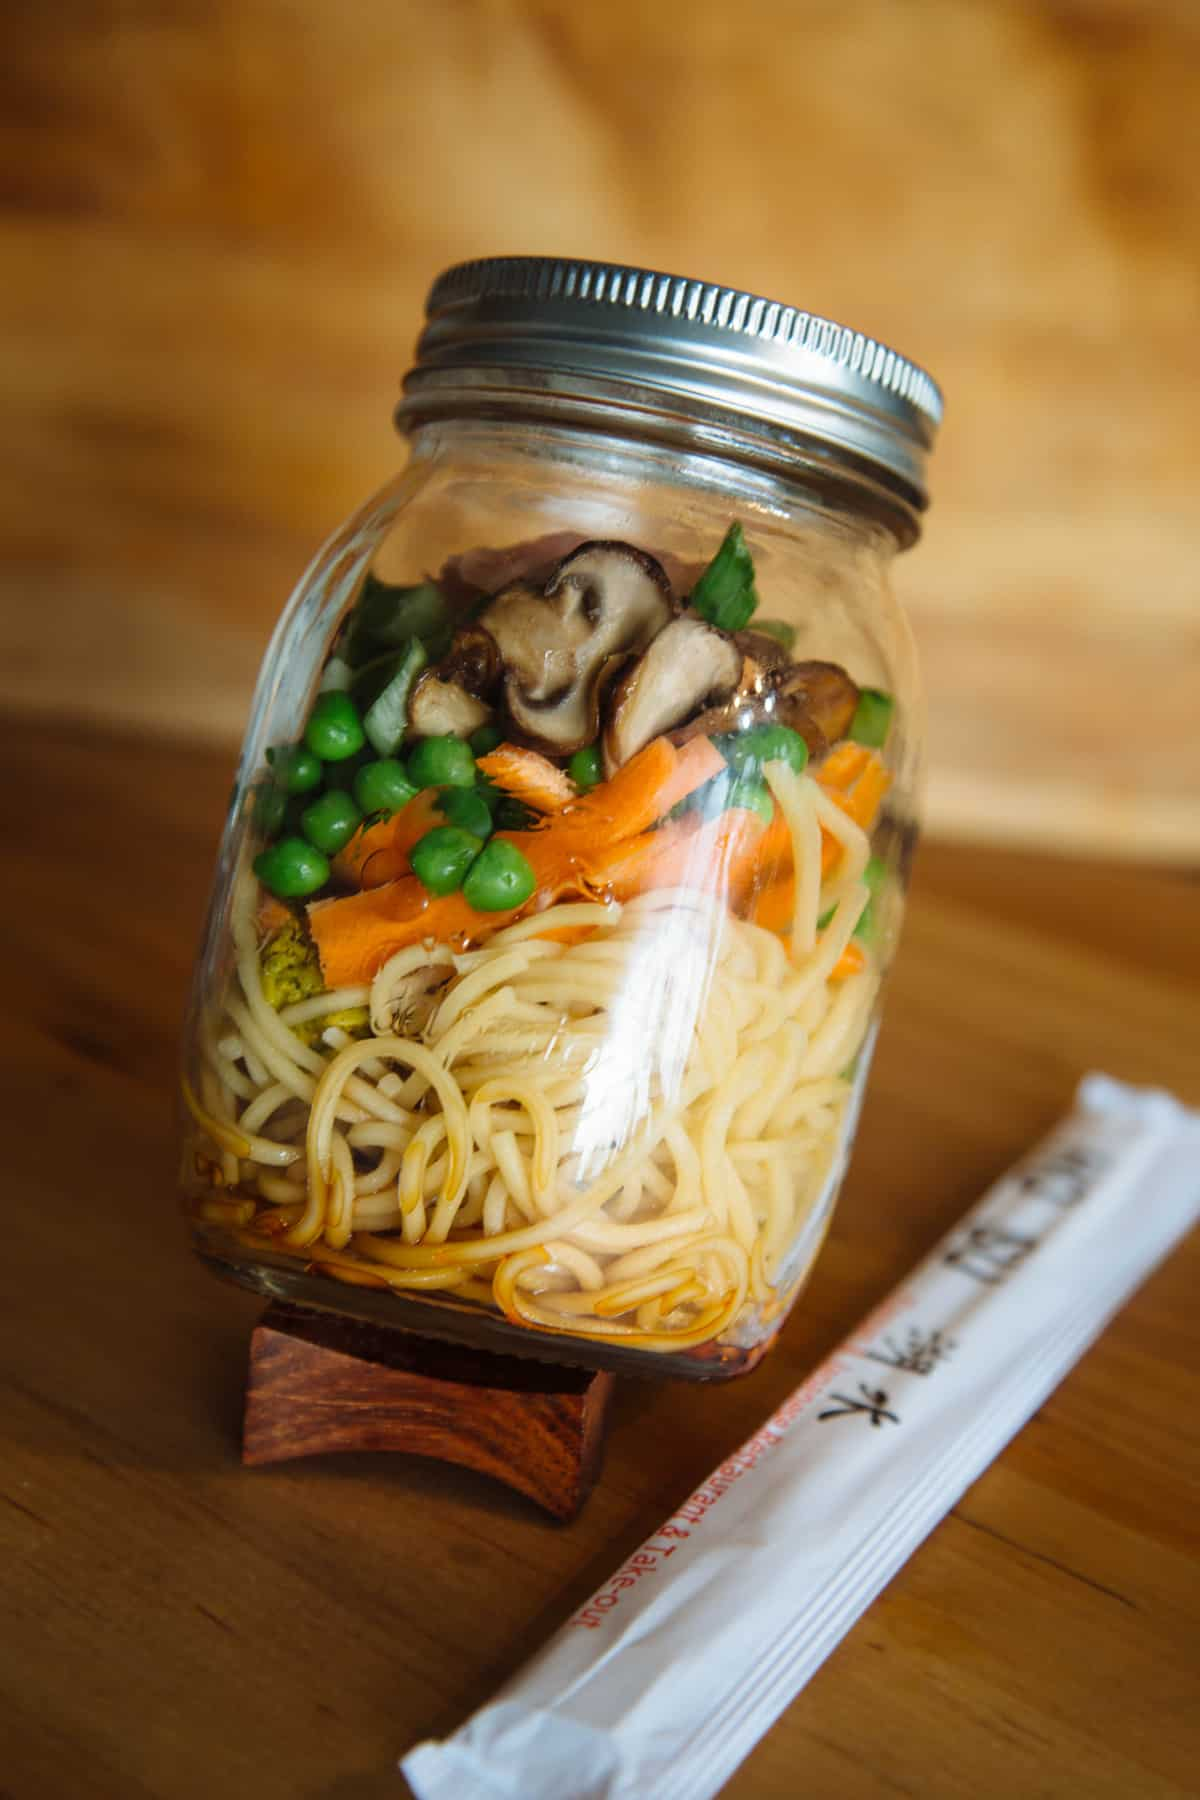 How To Make Homemade Instant Noodles The Edgy Veg